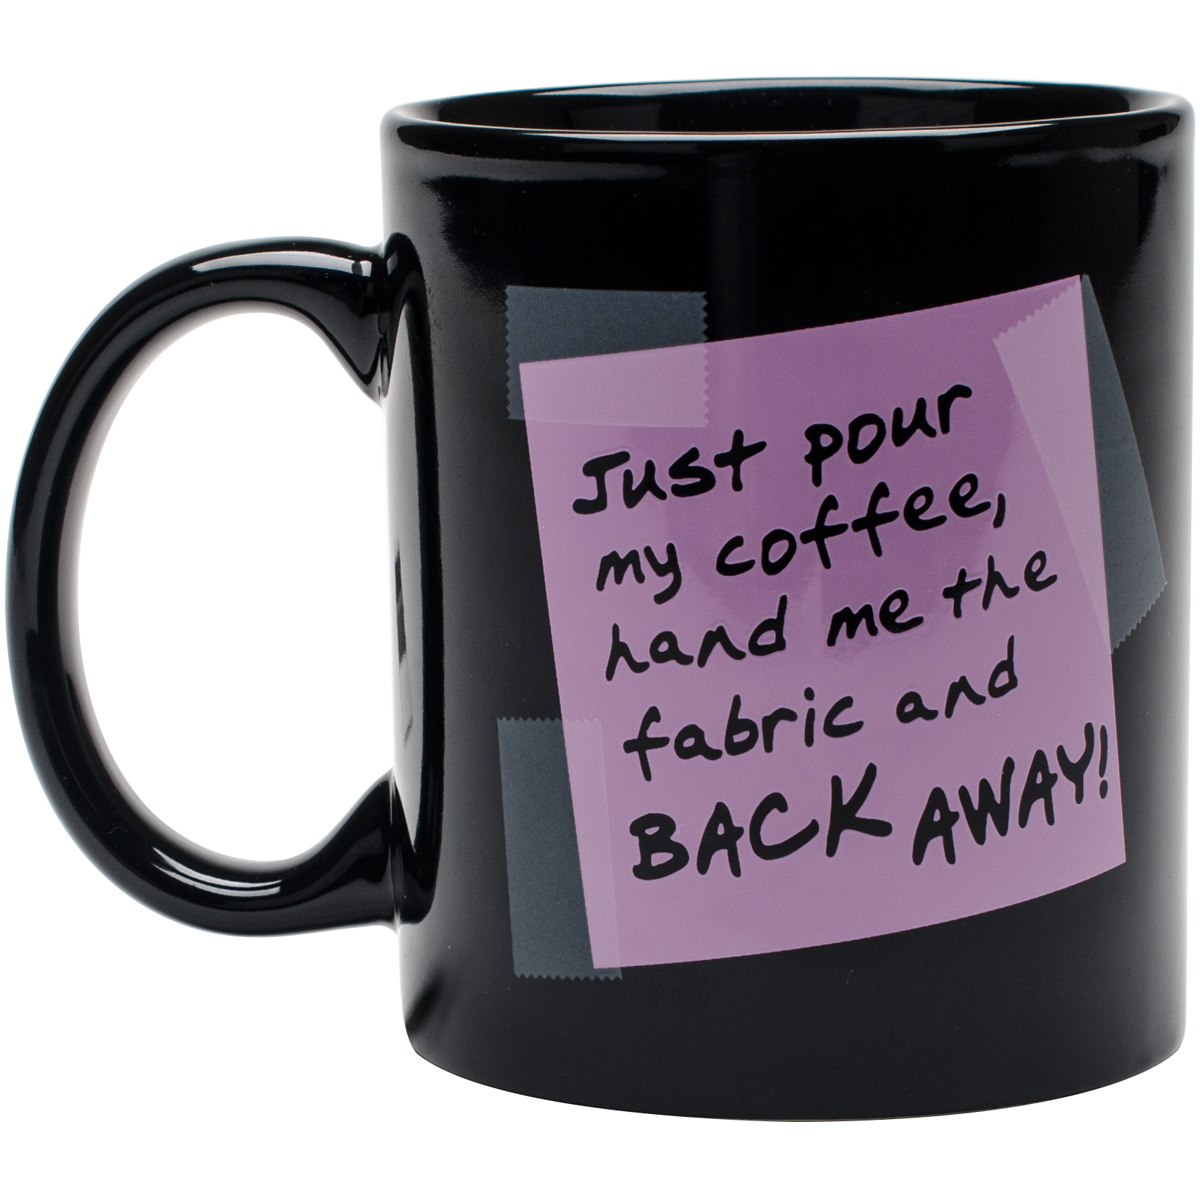 Quilt Happy Back Away Mug 11oz-Purple